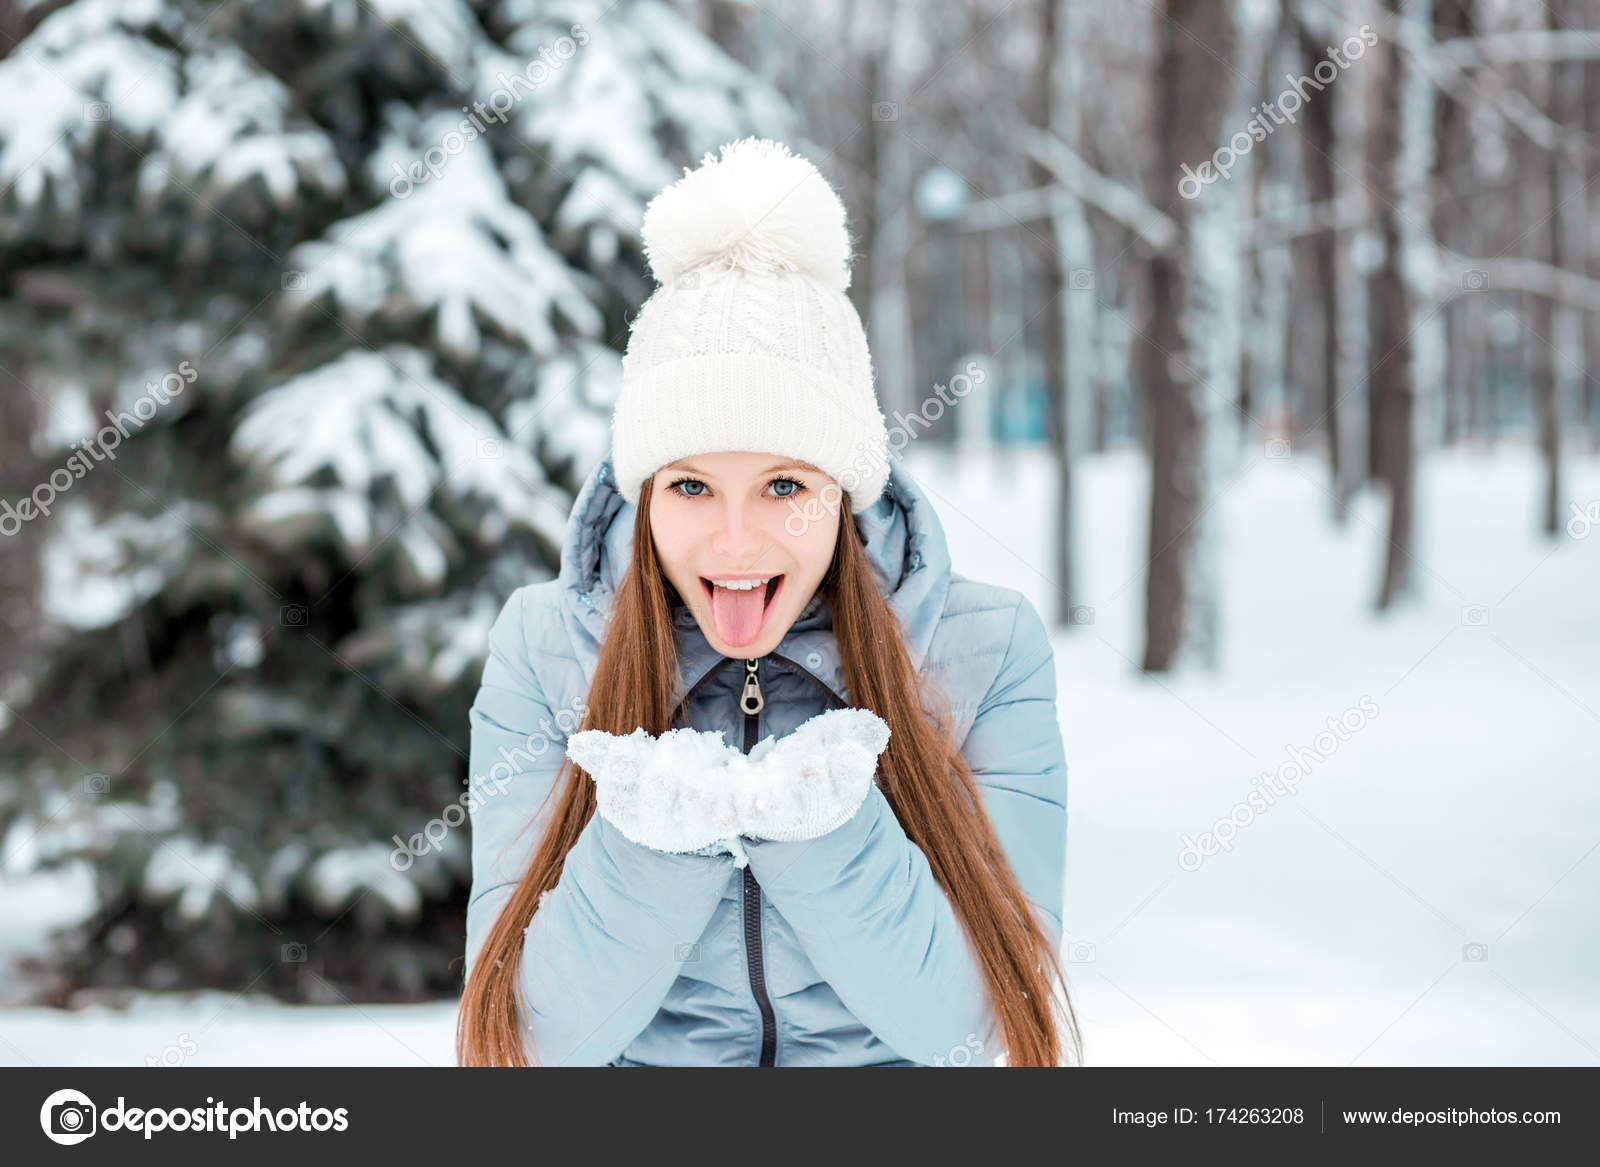 8eb6fa3dc A girl dressed in warm winter clothes and a hat posing in a winter ...